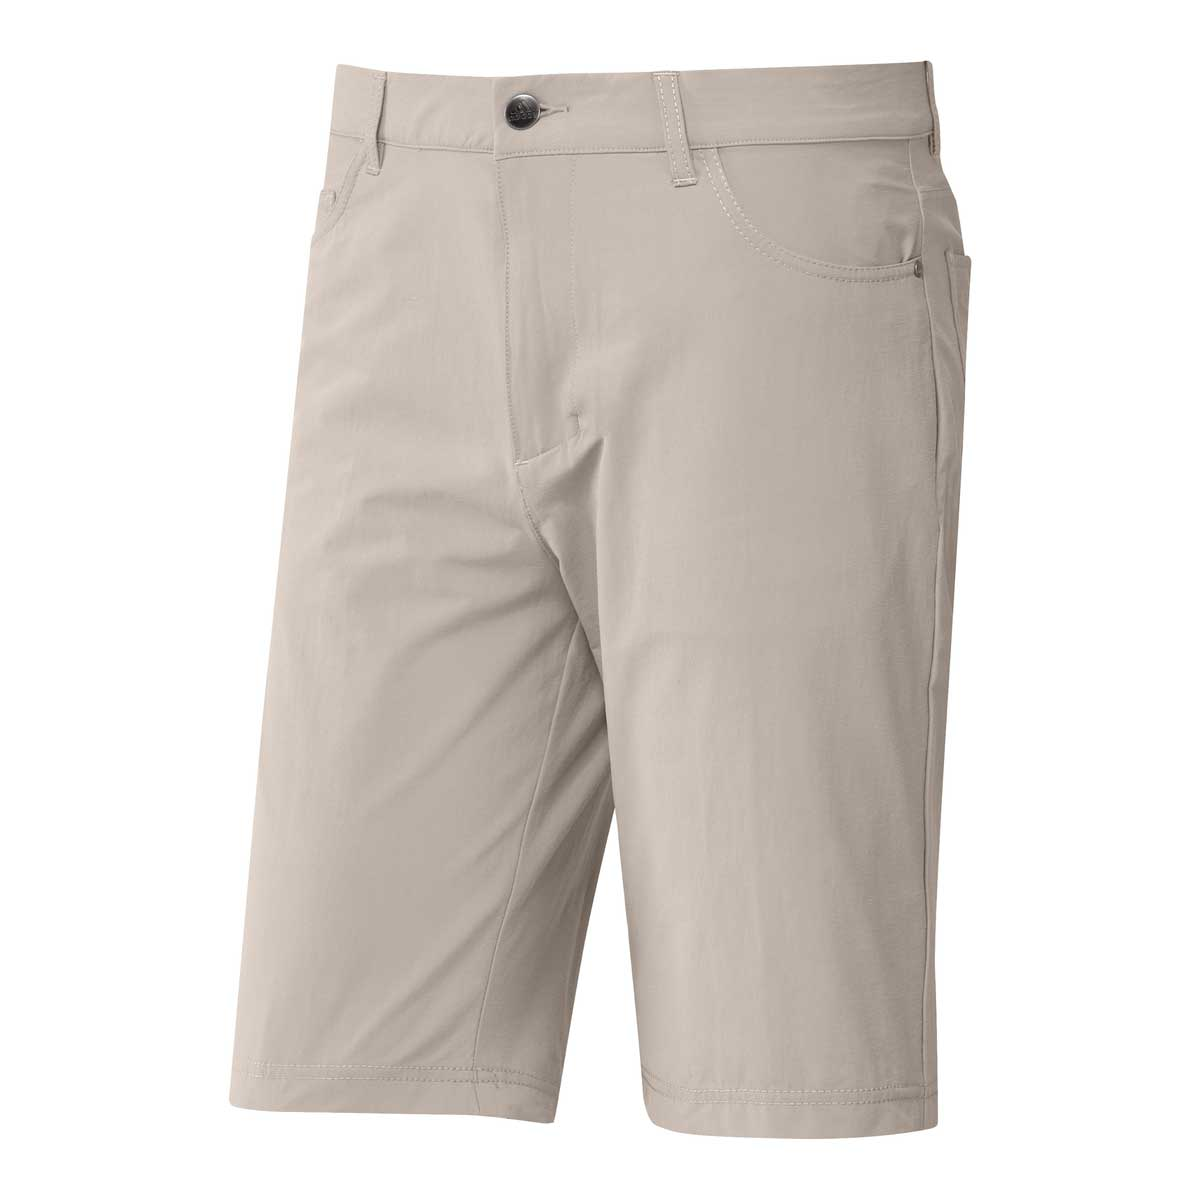 Adidas Men's Go-To Five Pocket Clear Brown Short